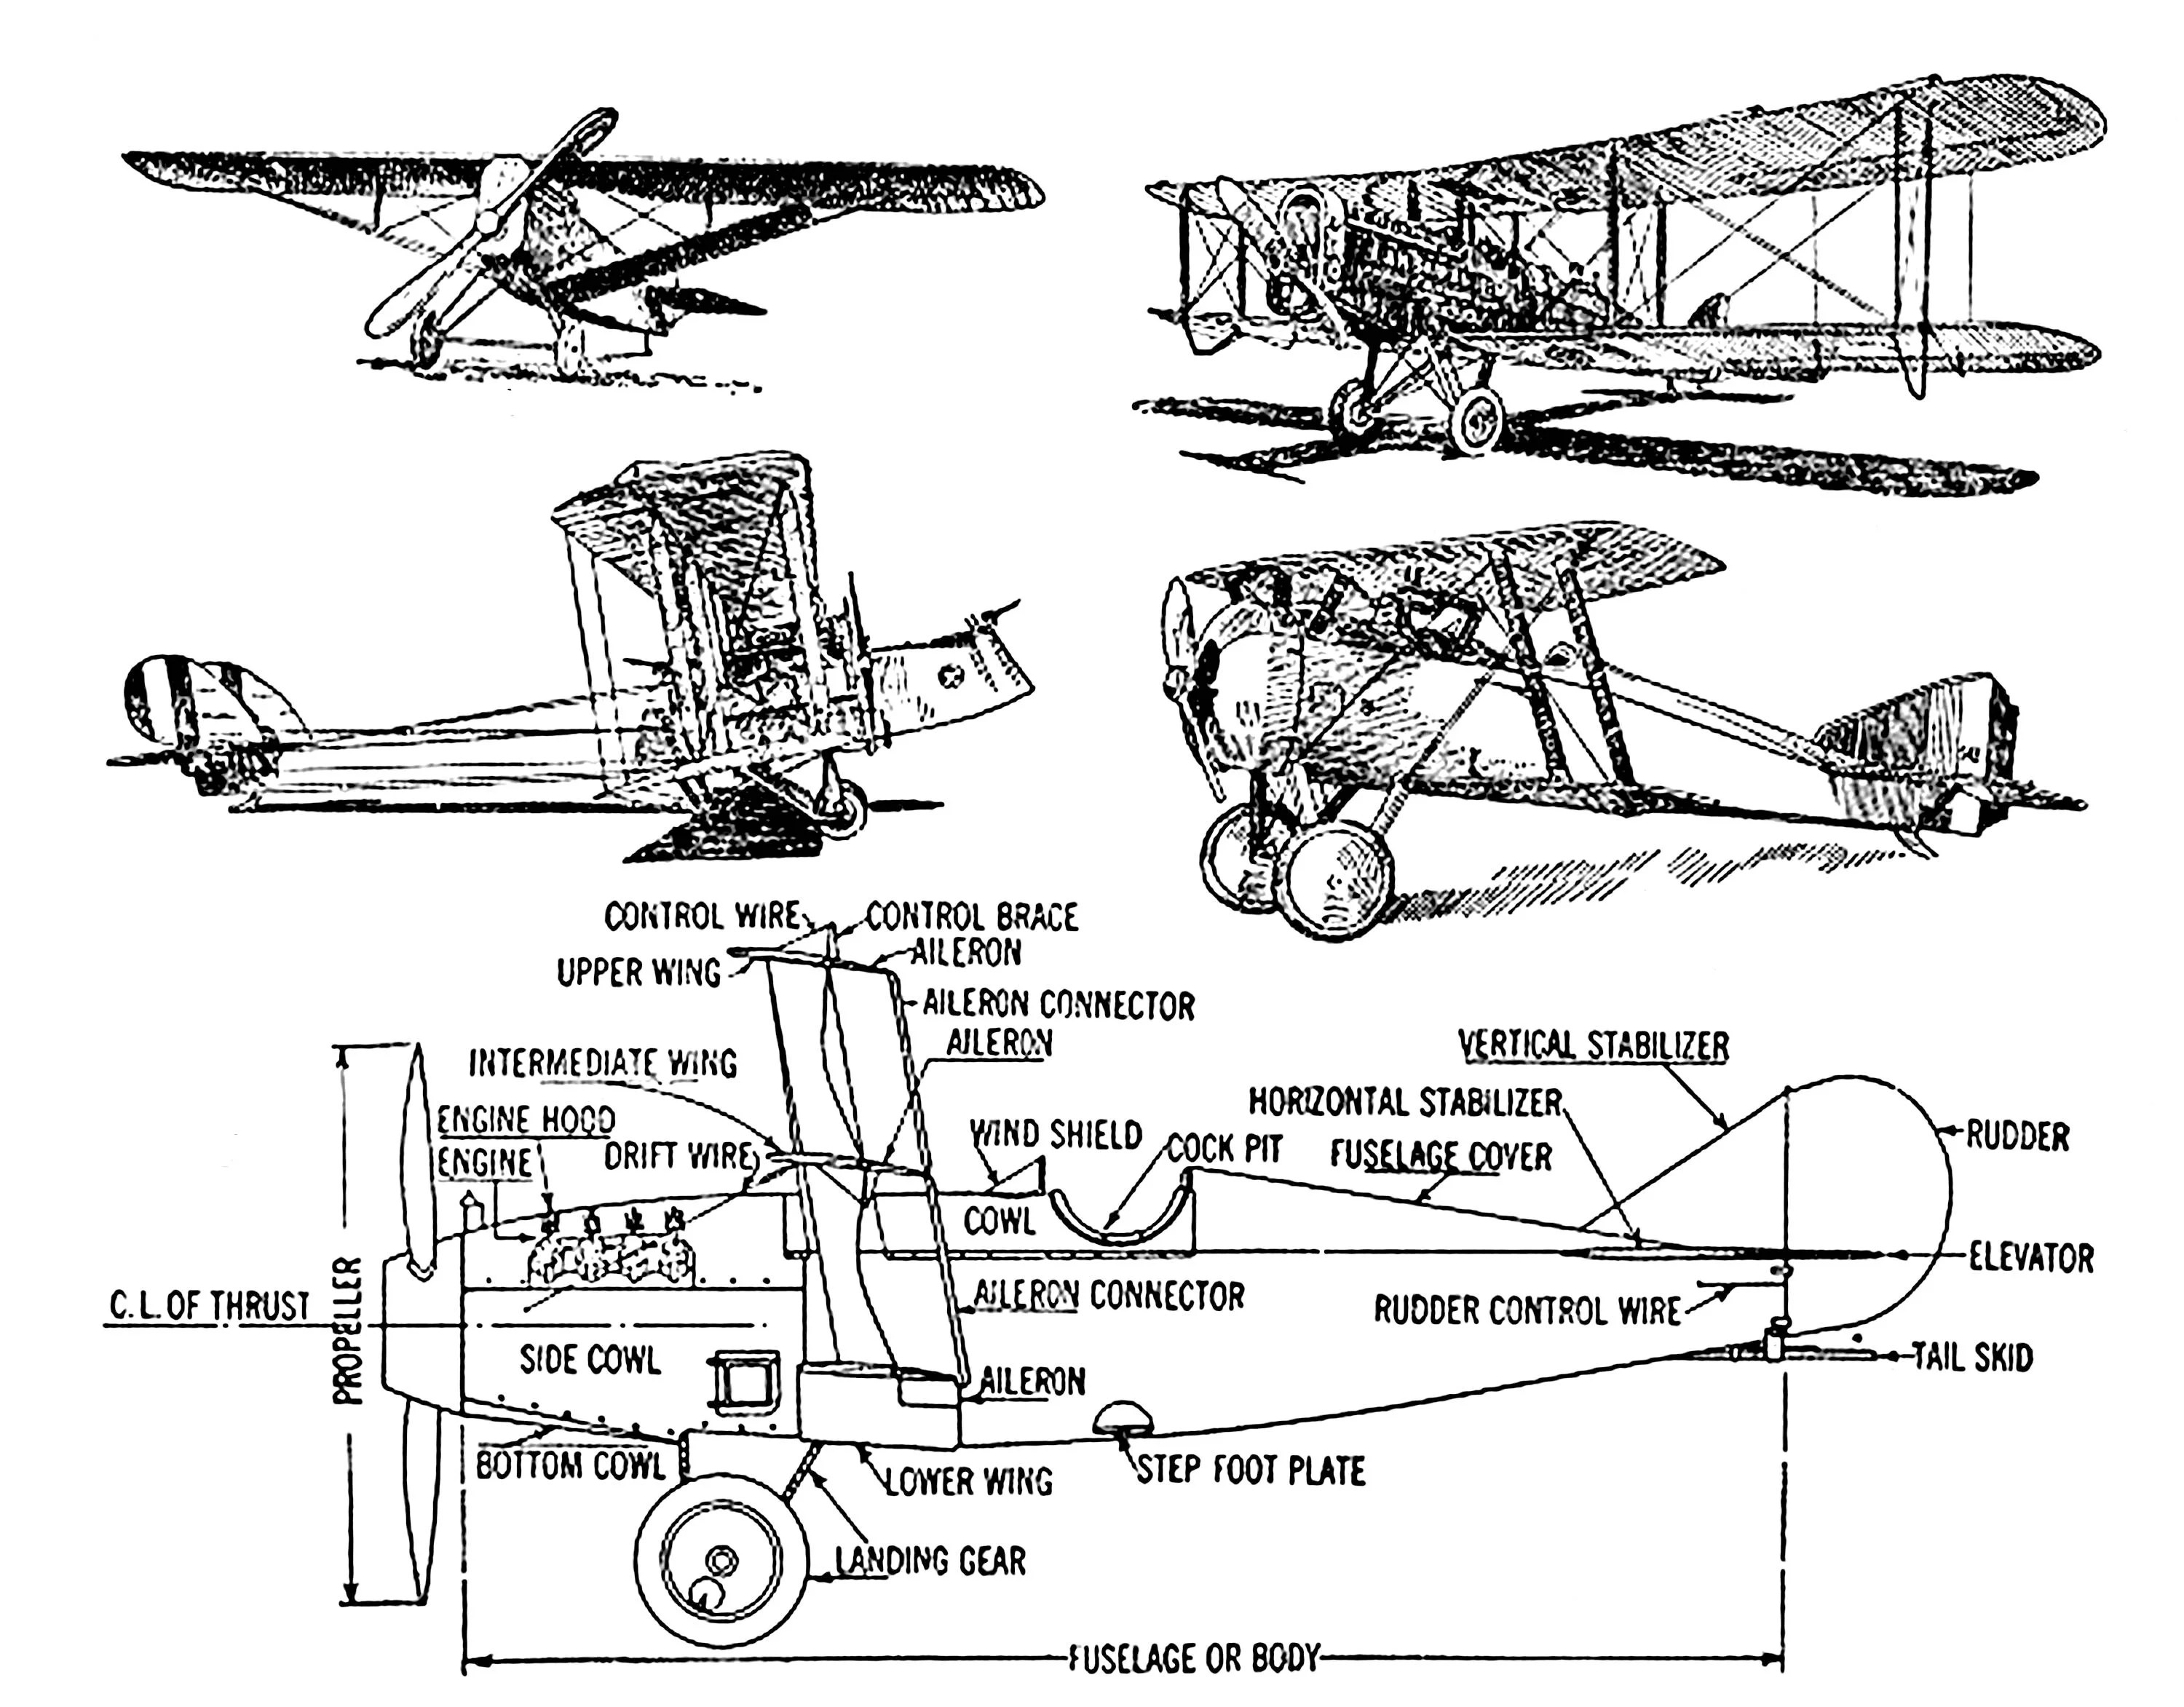 Vintage Airplane With Parts Label Ink Drawing Clipart